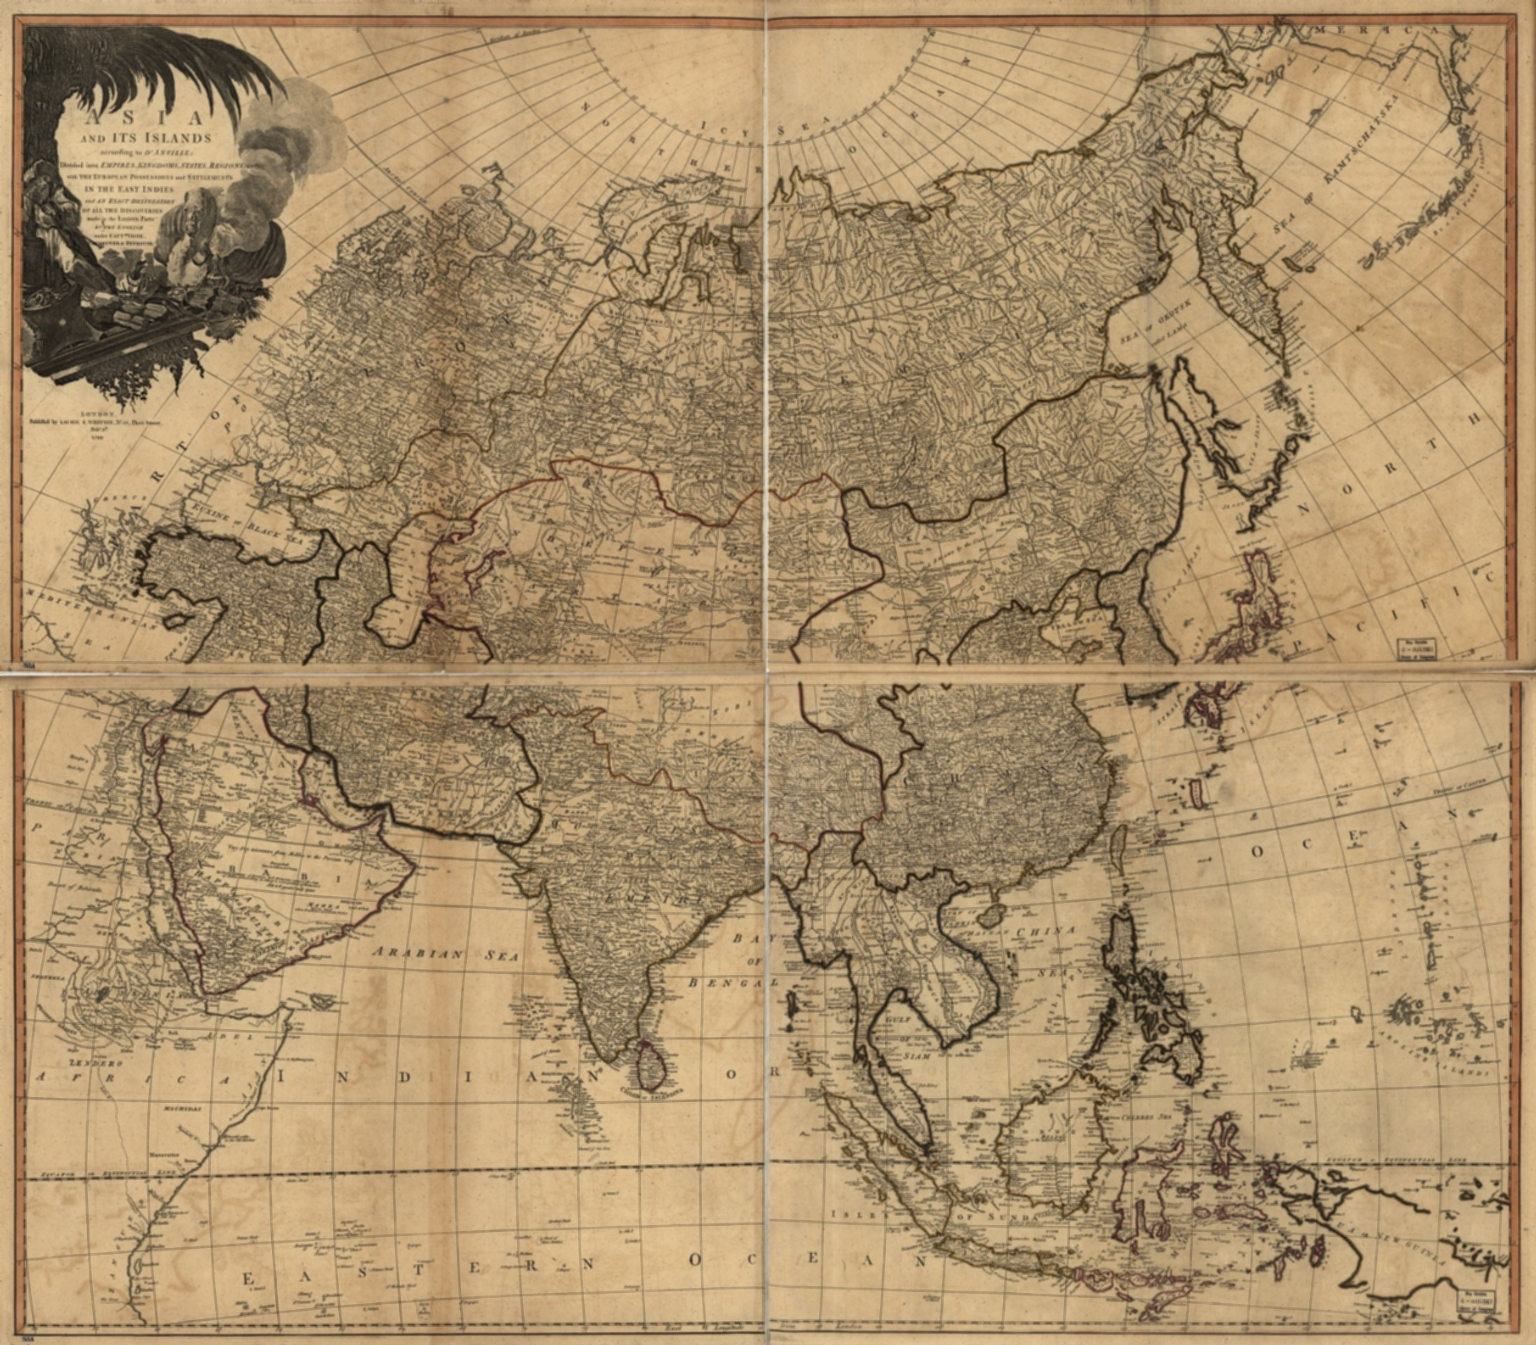 Asia and its islands according to D'Anville